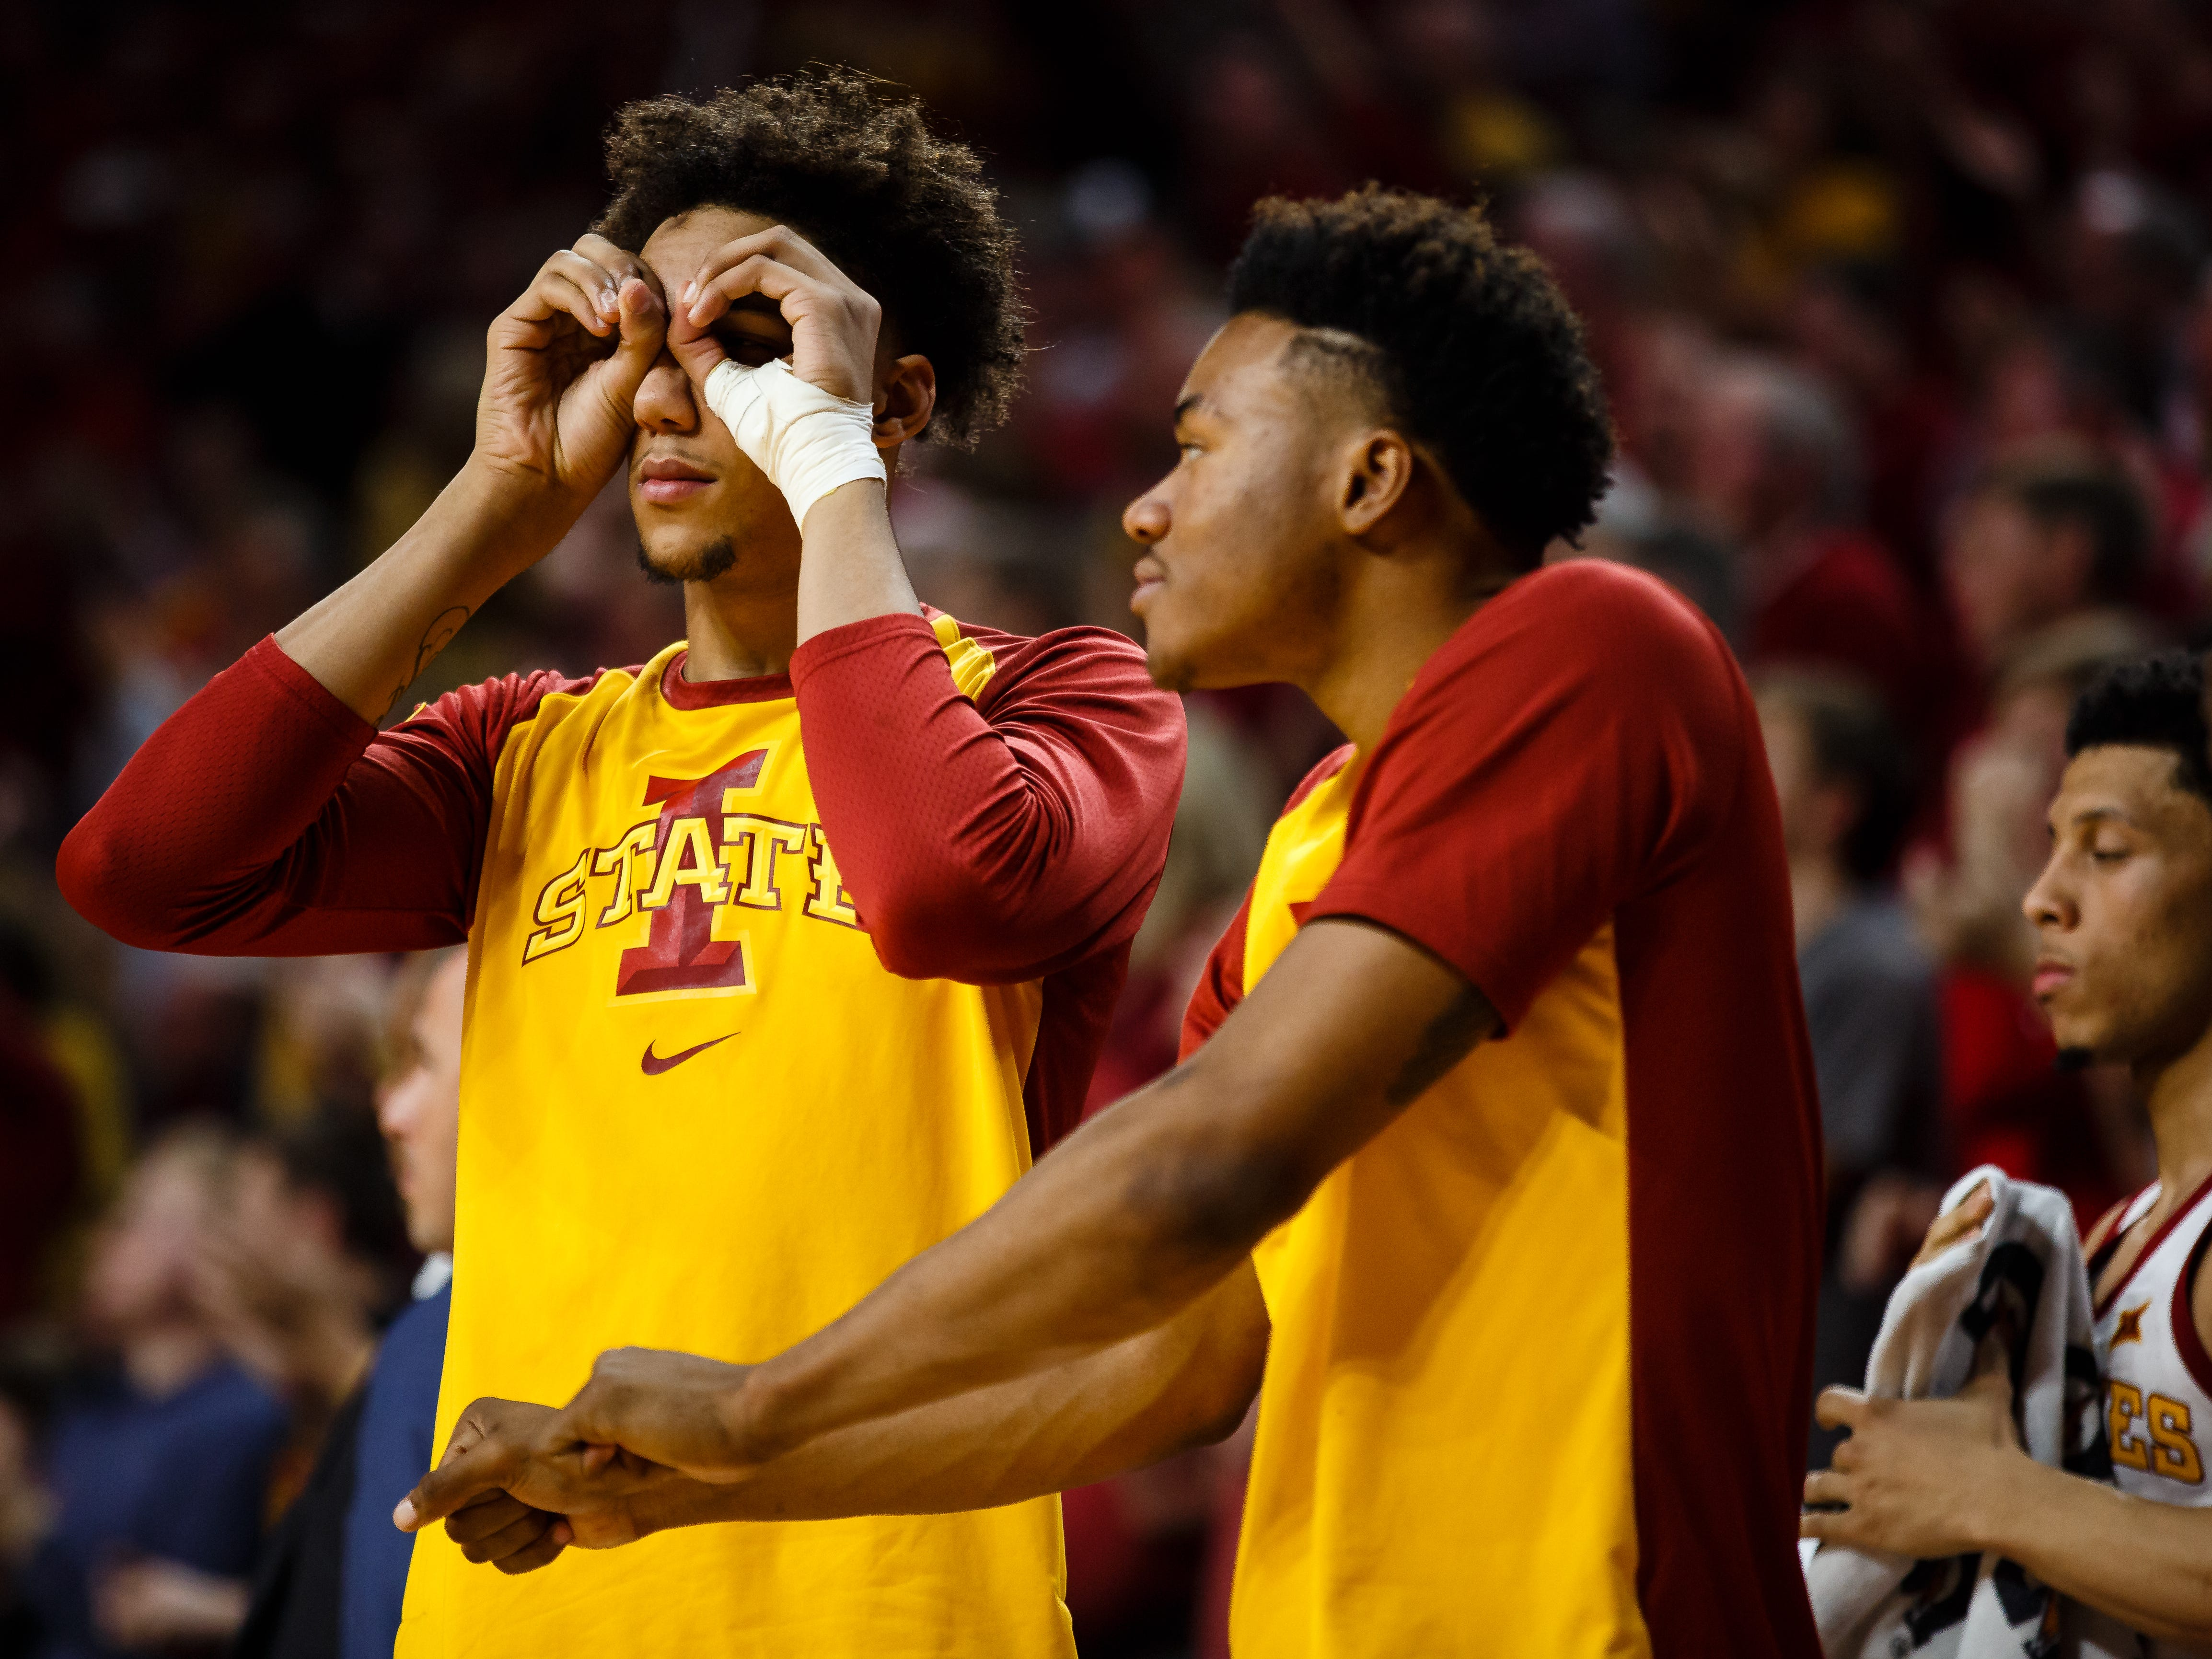 Iowa State's George Conditt IV (4) and Iowa State's Zion Griffin (0) celebrate on the bench during the second half of their basketball game on Saturday, Jan. 5, 2019, in Ames. Iowa State would go on to beat Kansas 77-60.